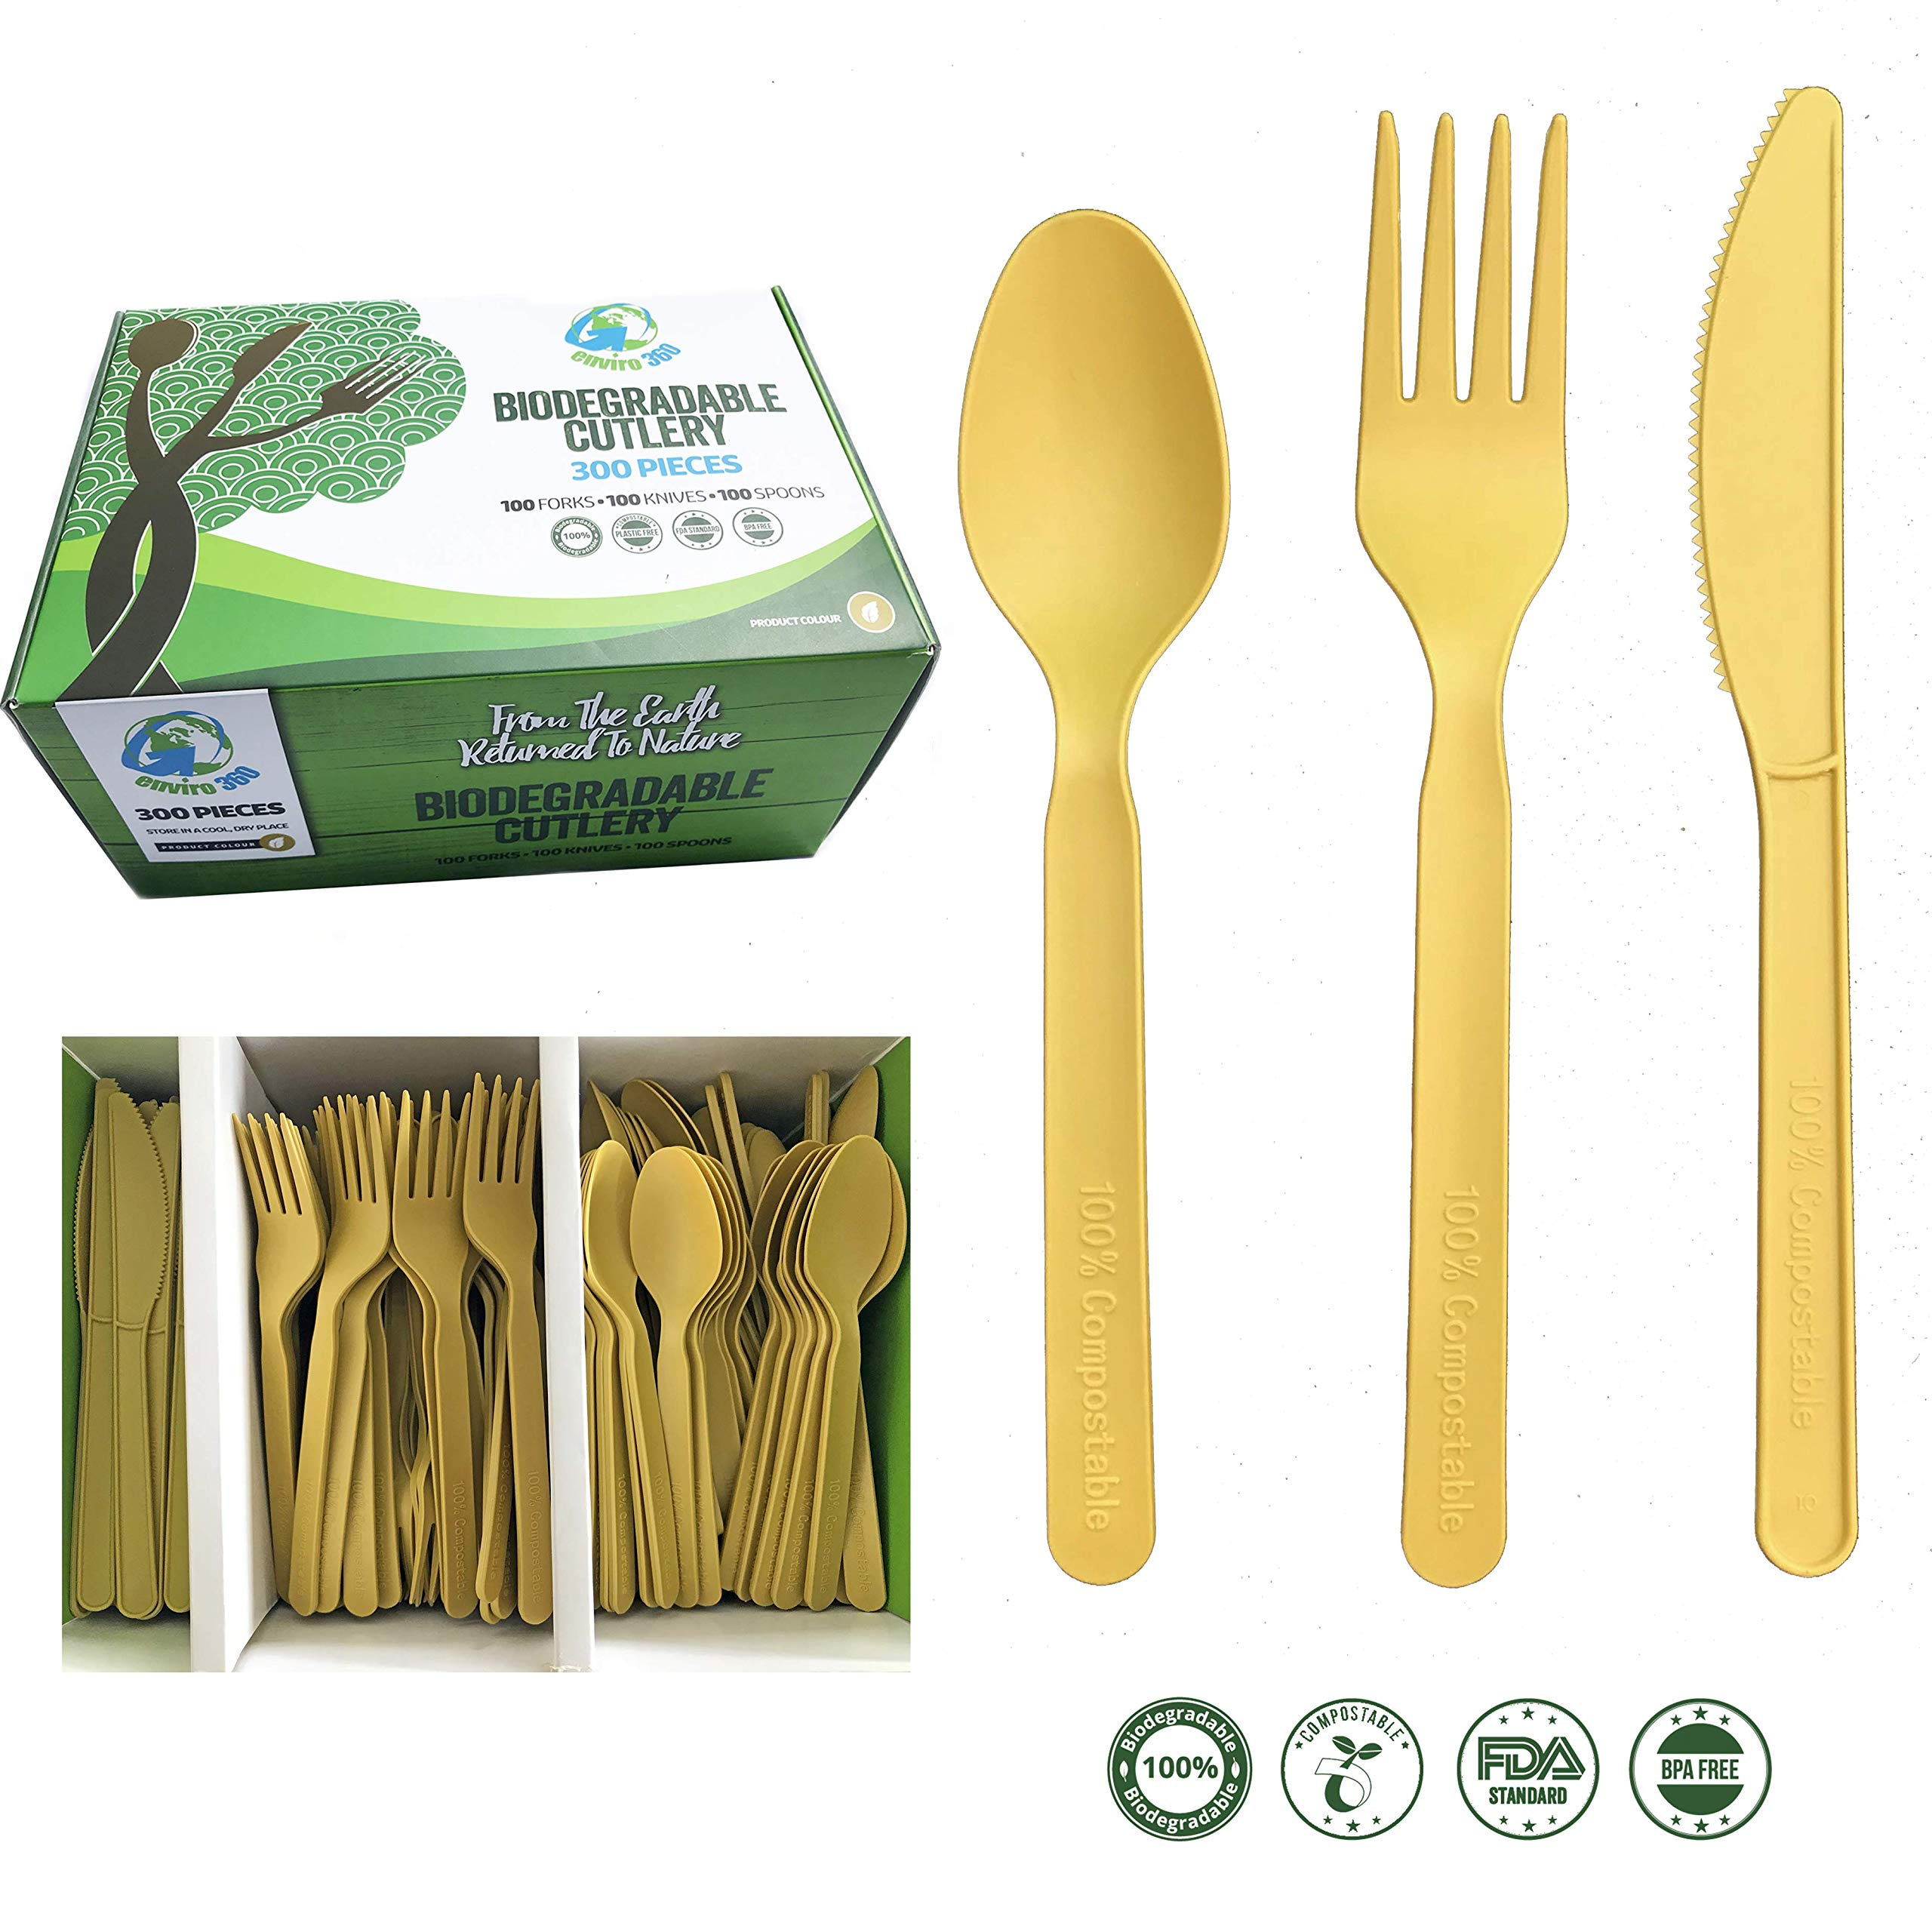 Compostable Biodegradable Disposable Cutlery Utensils Combo Set 300 Pieces 100 Forks 100 Knives & 100 Spoons Matte Gold Sturdy Durable Heat Resistant 100% Plastic-Free (7 inches) by Enviro 360 by Enviro Cutlery